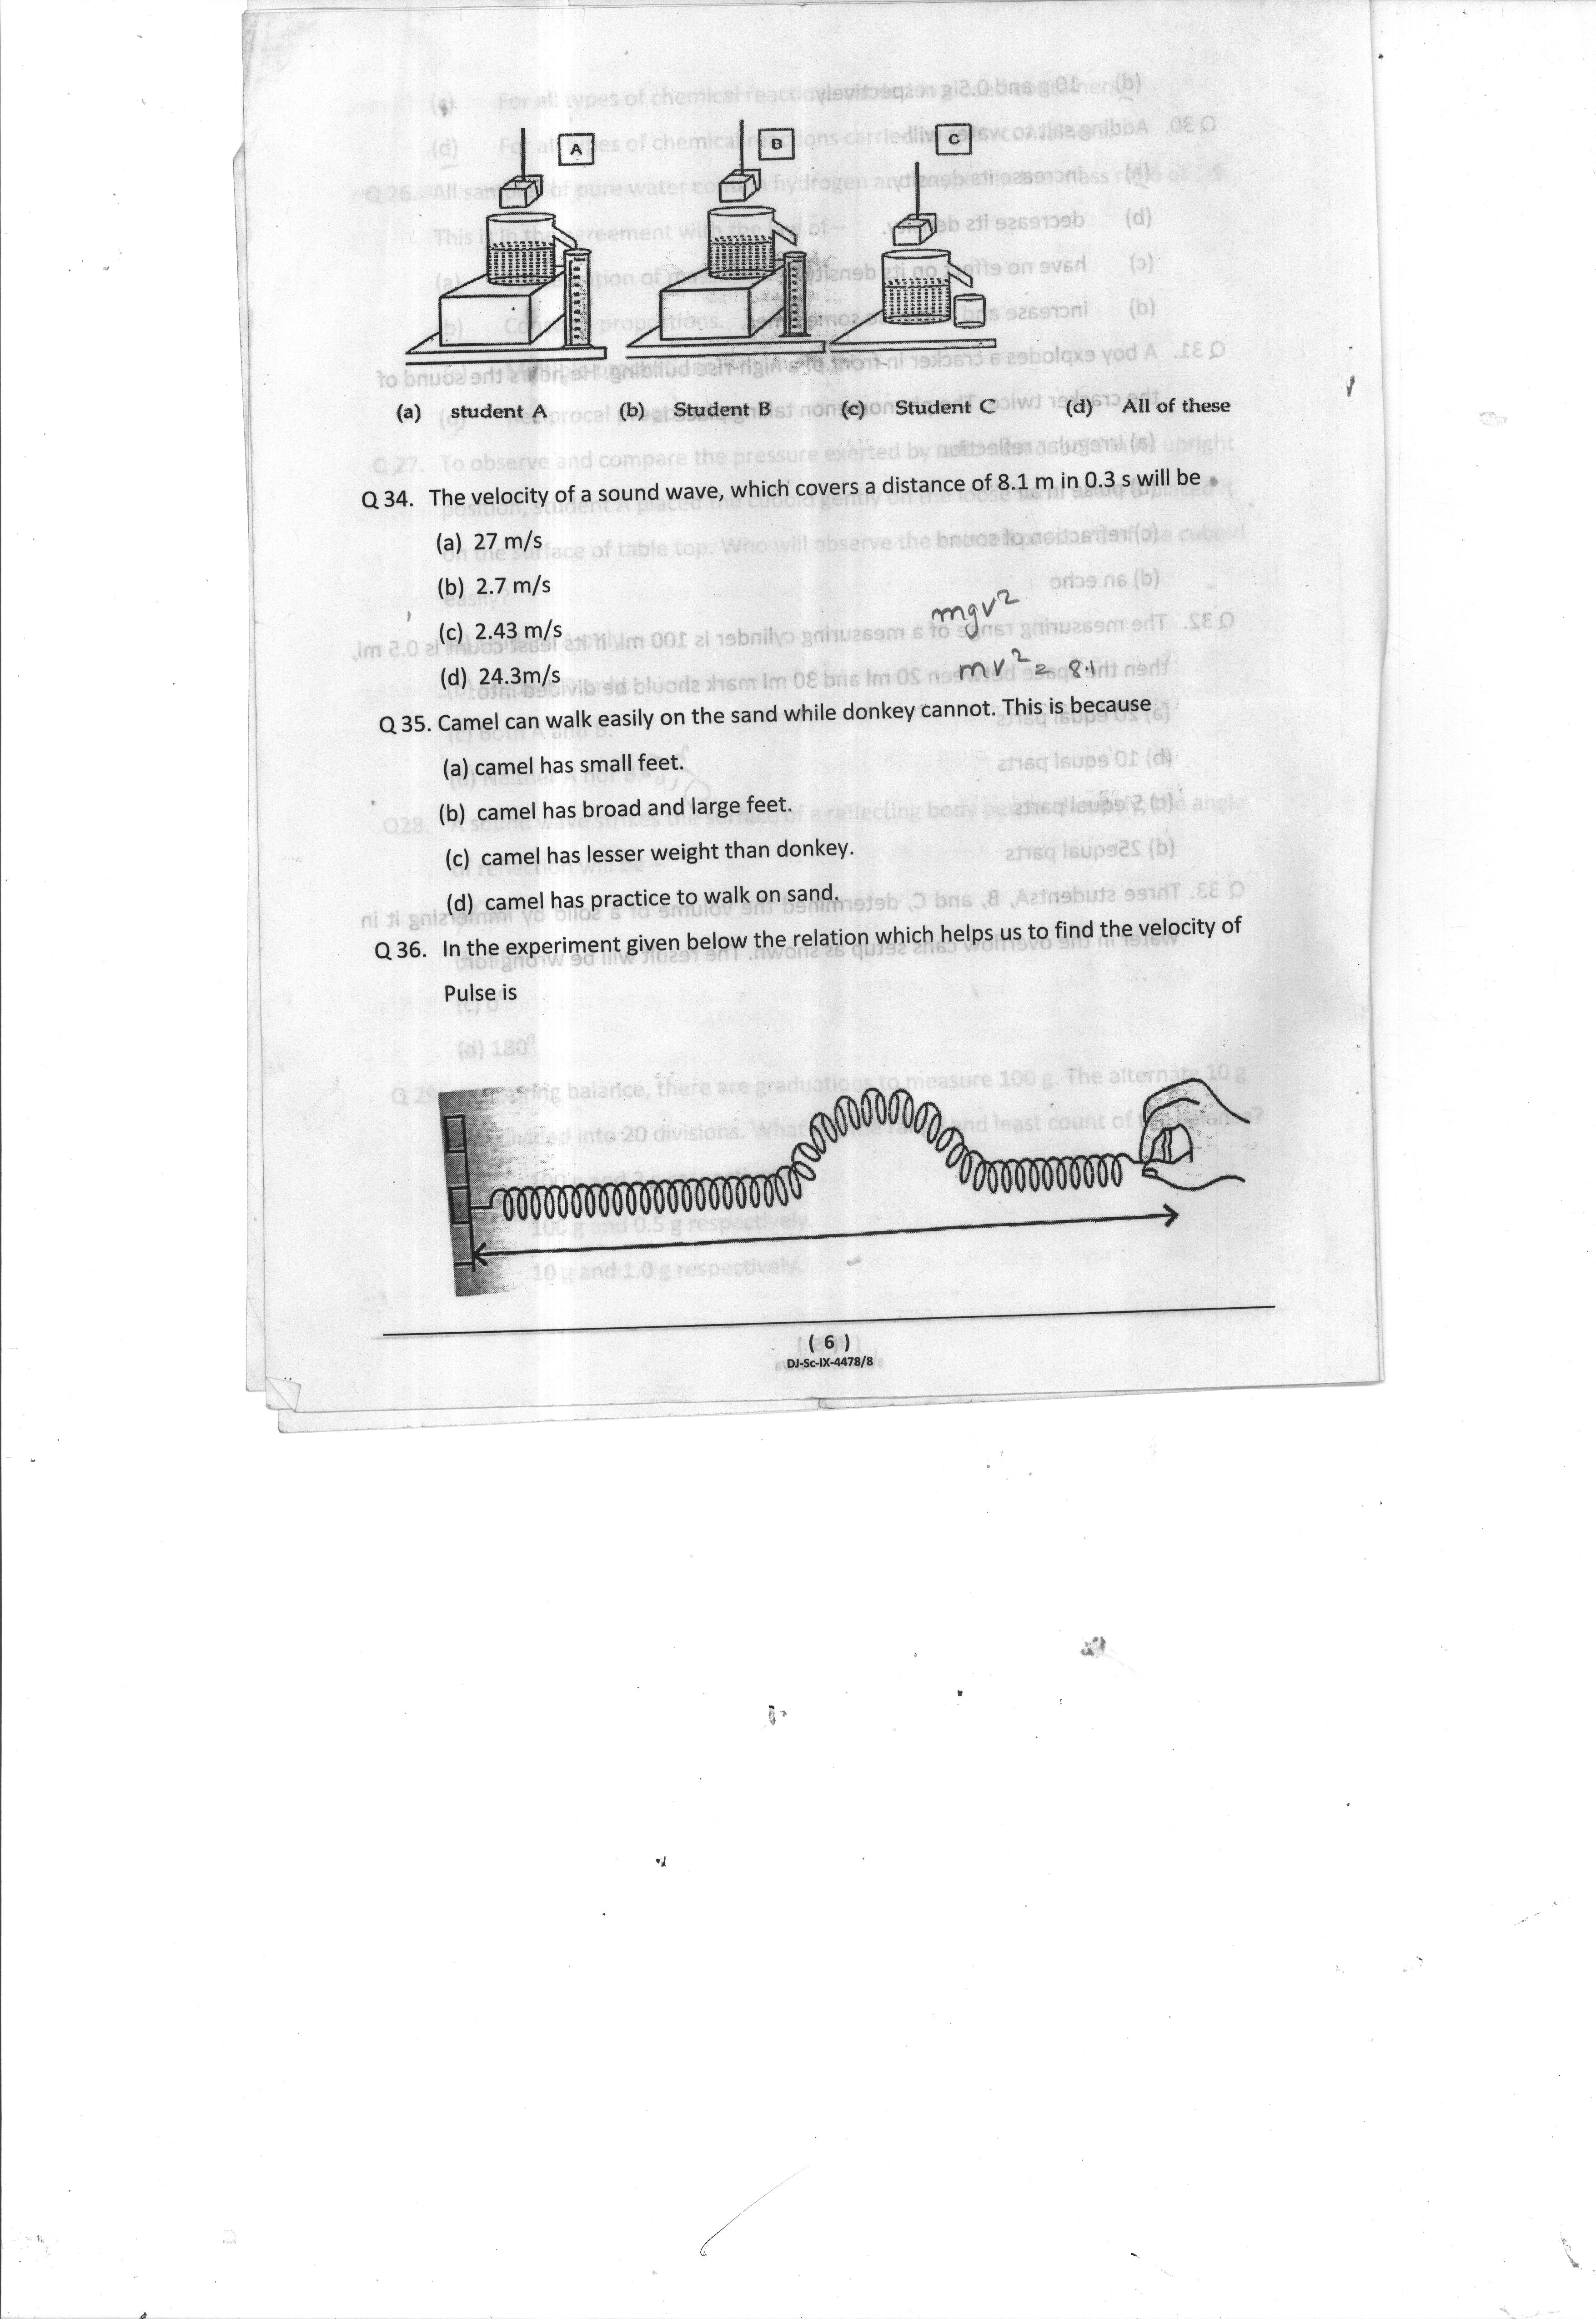 English Sample Question Paper For Class 9 Cbse Fa3